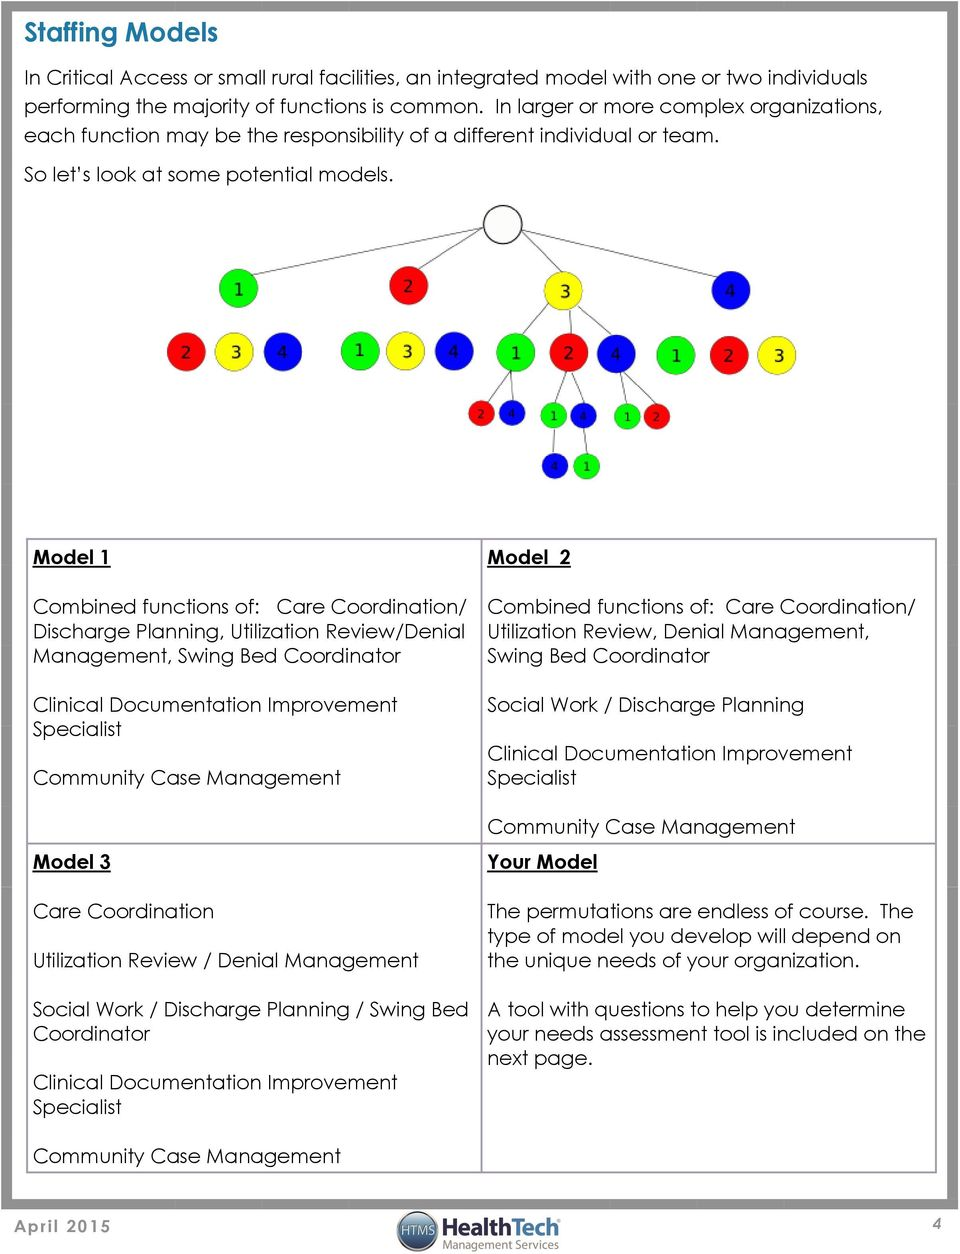 Model 1 Combined functions of: Care Coordination/ Discharge Planning, Utilization Review/Denial Management, Swing Bed Coordinator Specialist Community Case Management Model 2 Combined functions of: